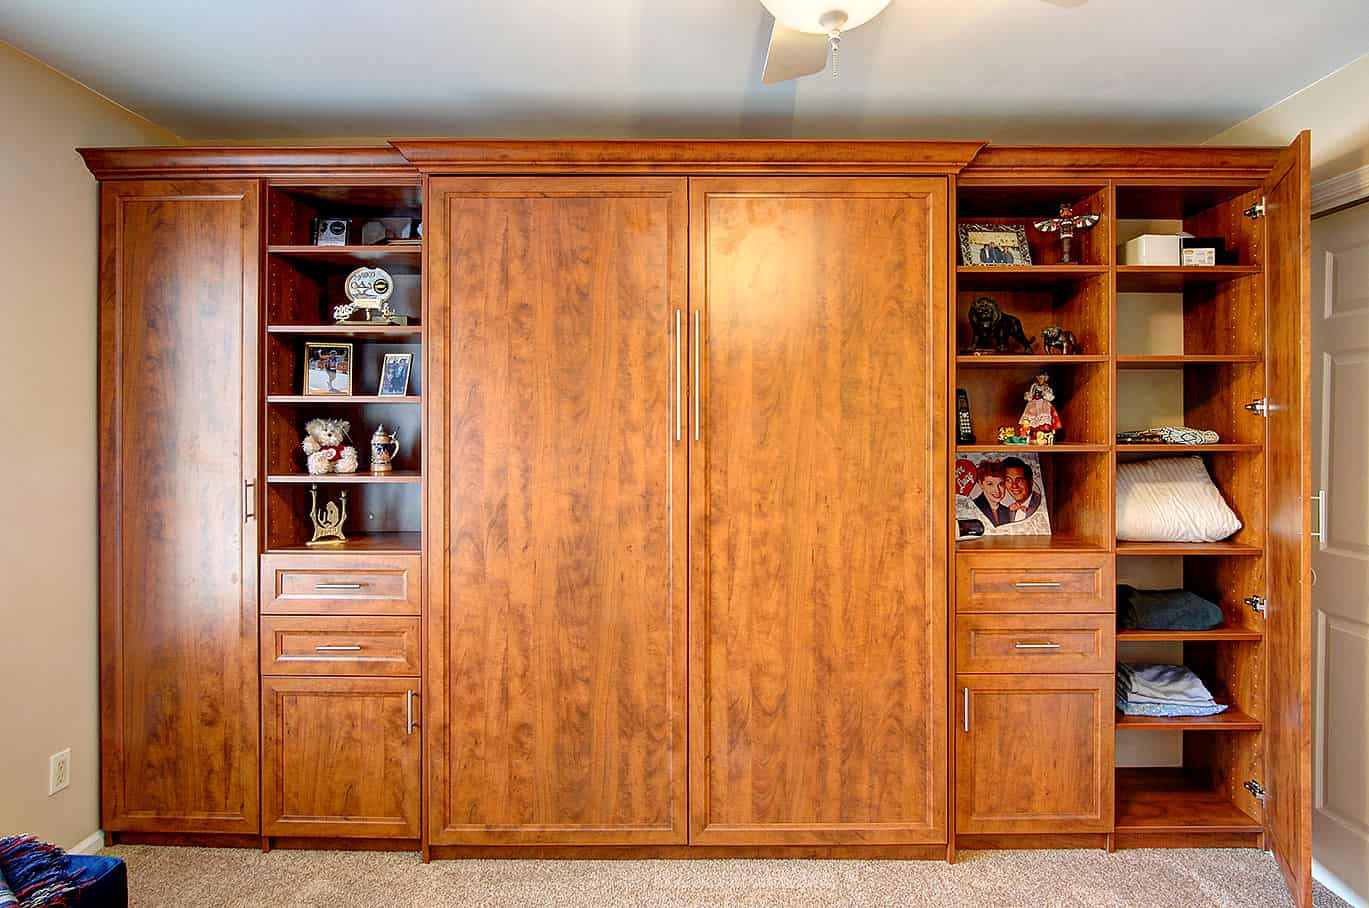 Wall bed as floor-to-ceiling custom cabinetry made of medium-toned wood with flat cabinet doors and open shelving.